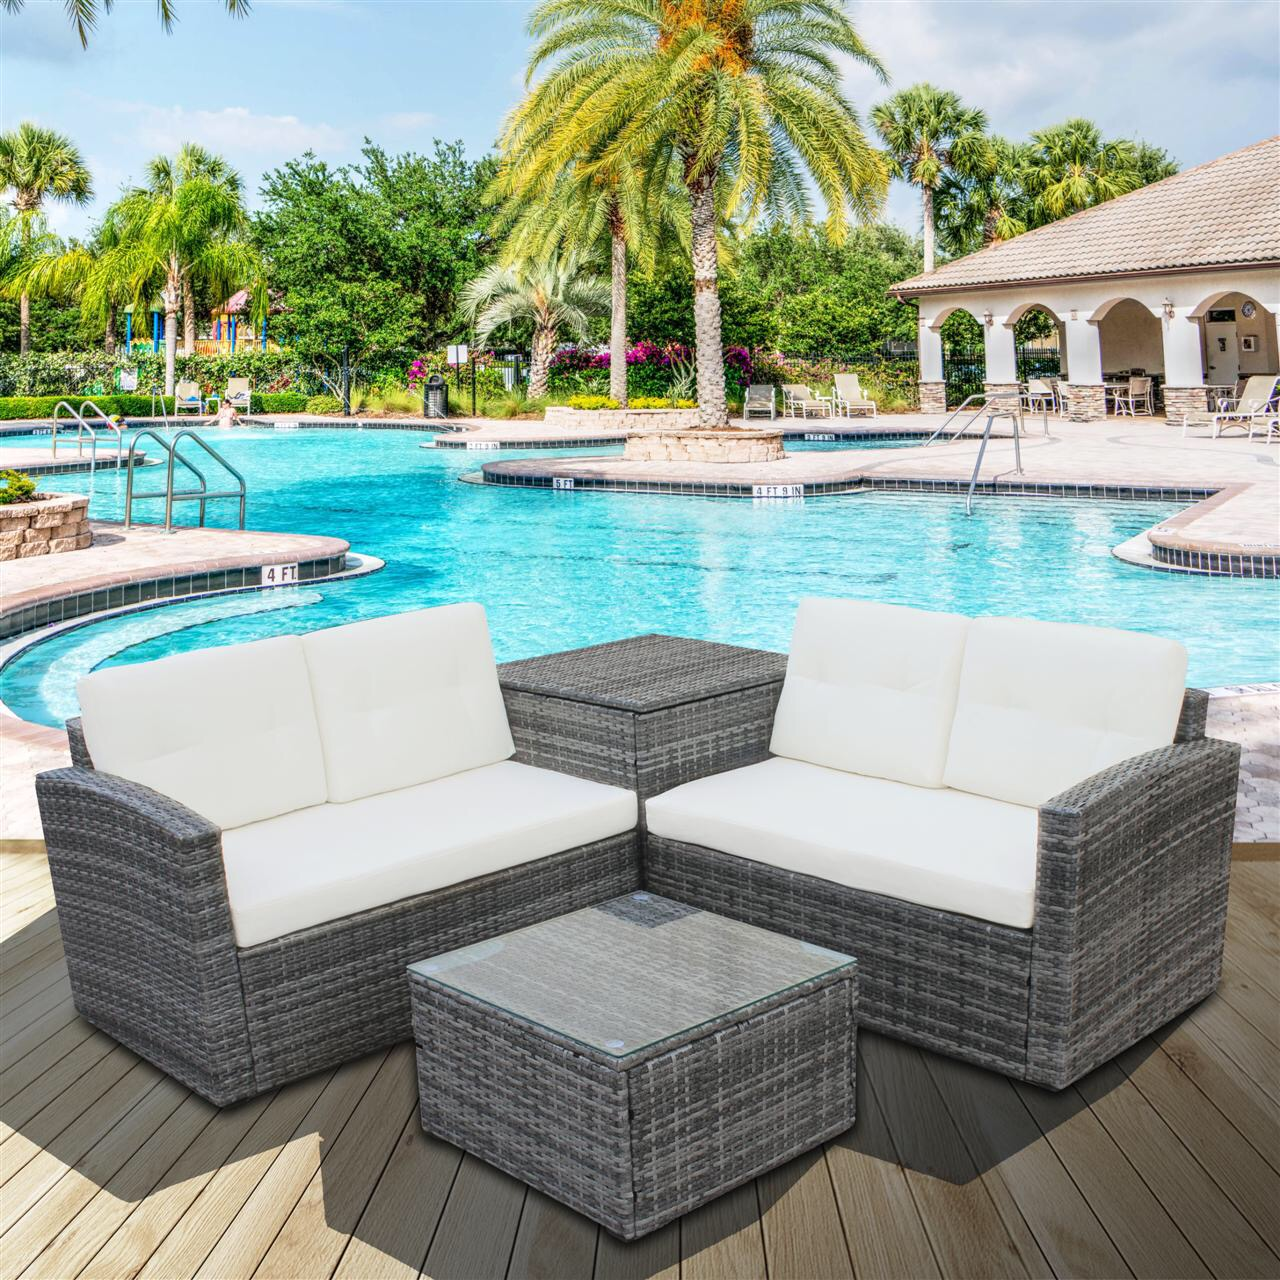 https www walmart com ip clearance 4 piece outdoor patio furniture set 2 rattan chairs glass table storage cabinet all weather rectangle sofa wicker set cushions backyard por 982364919